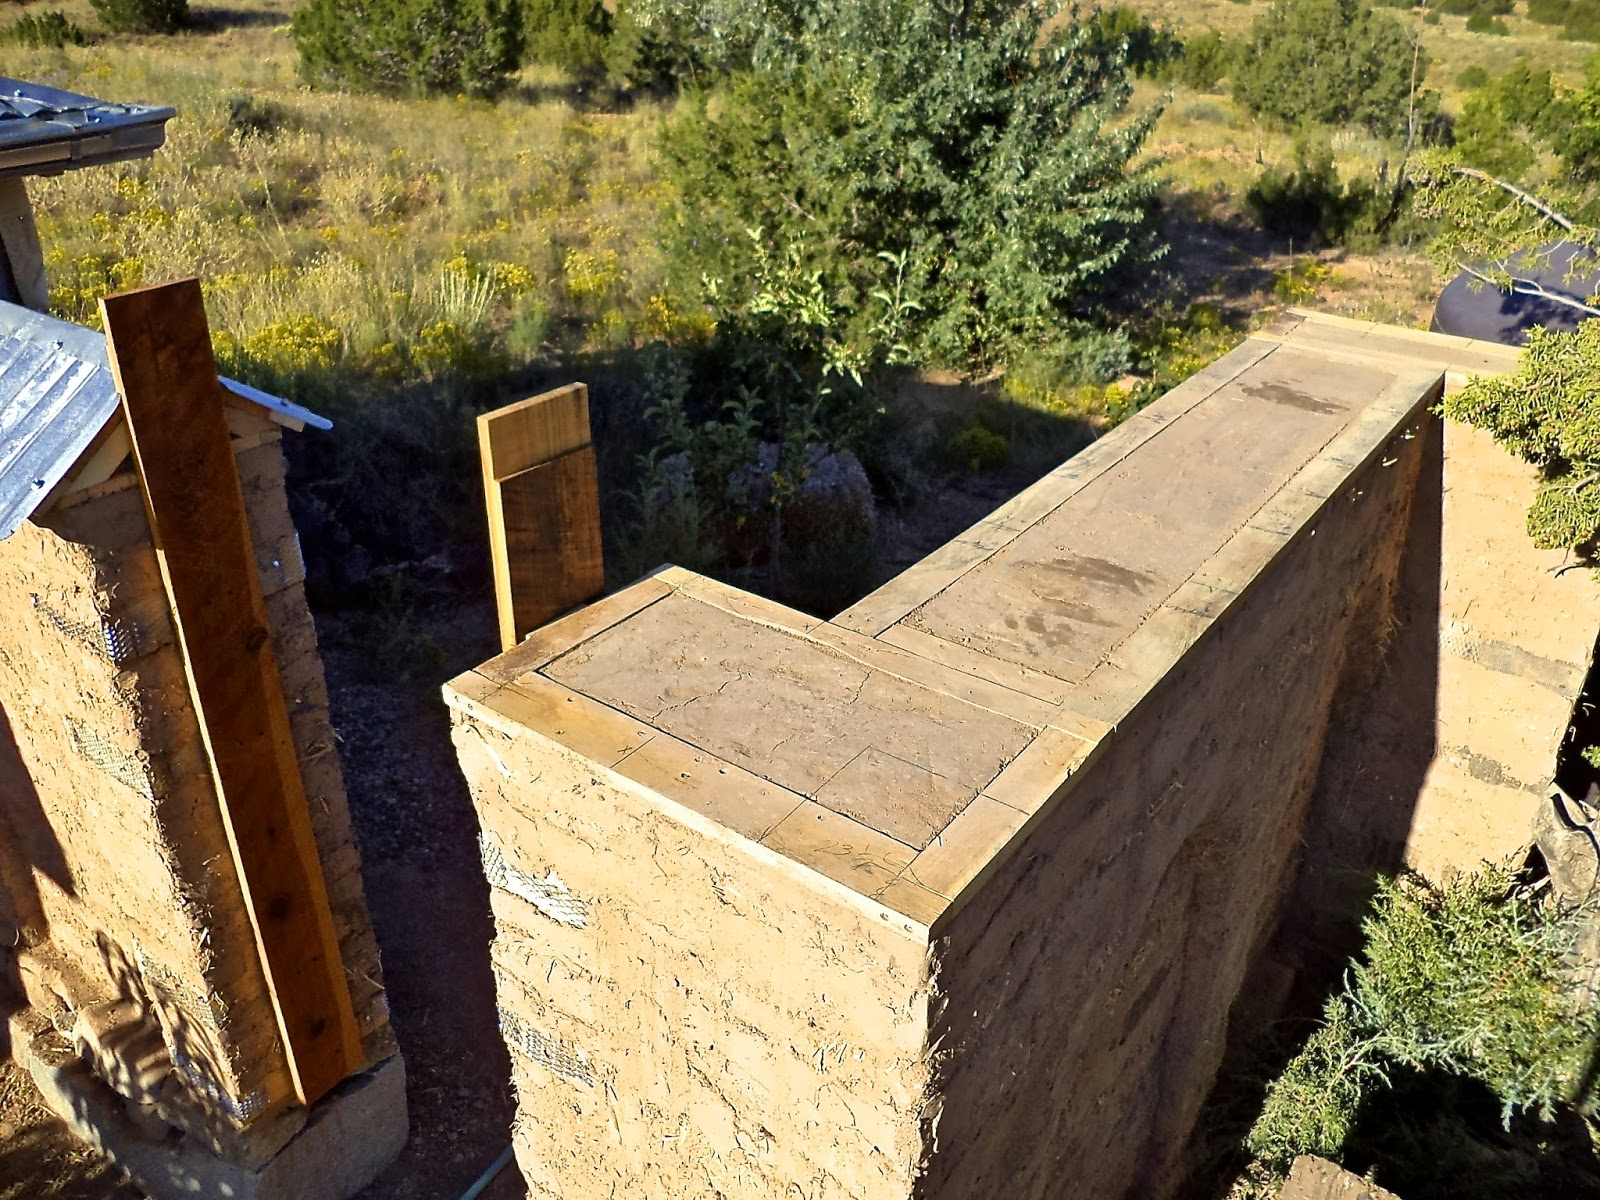 Alt. Build Blog: Building An Adobe Wall: #4 Putting On The Cap